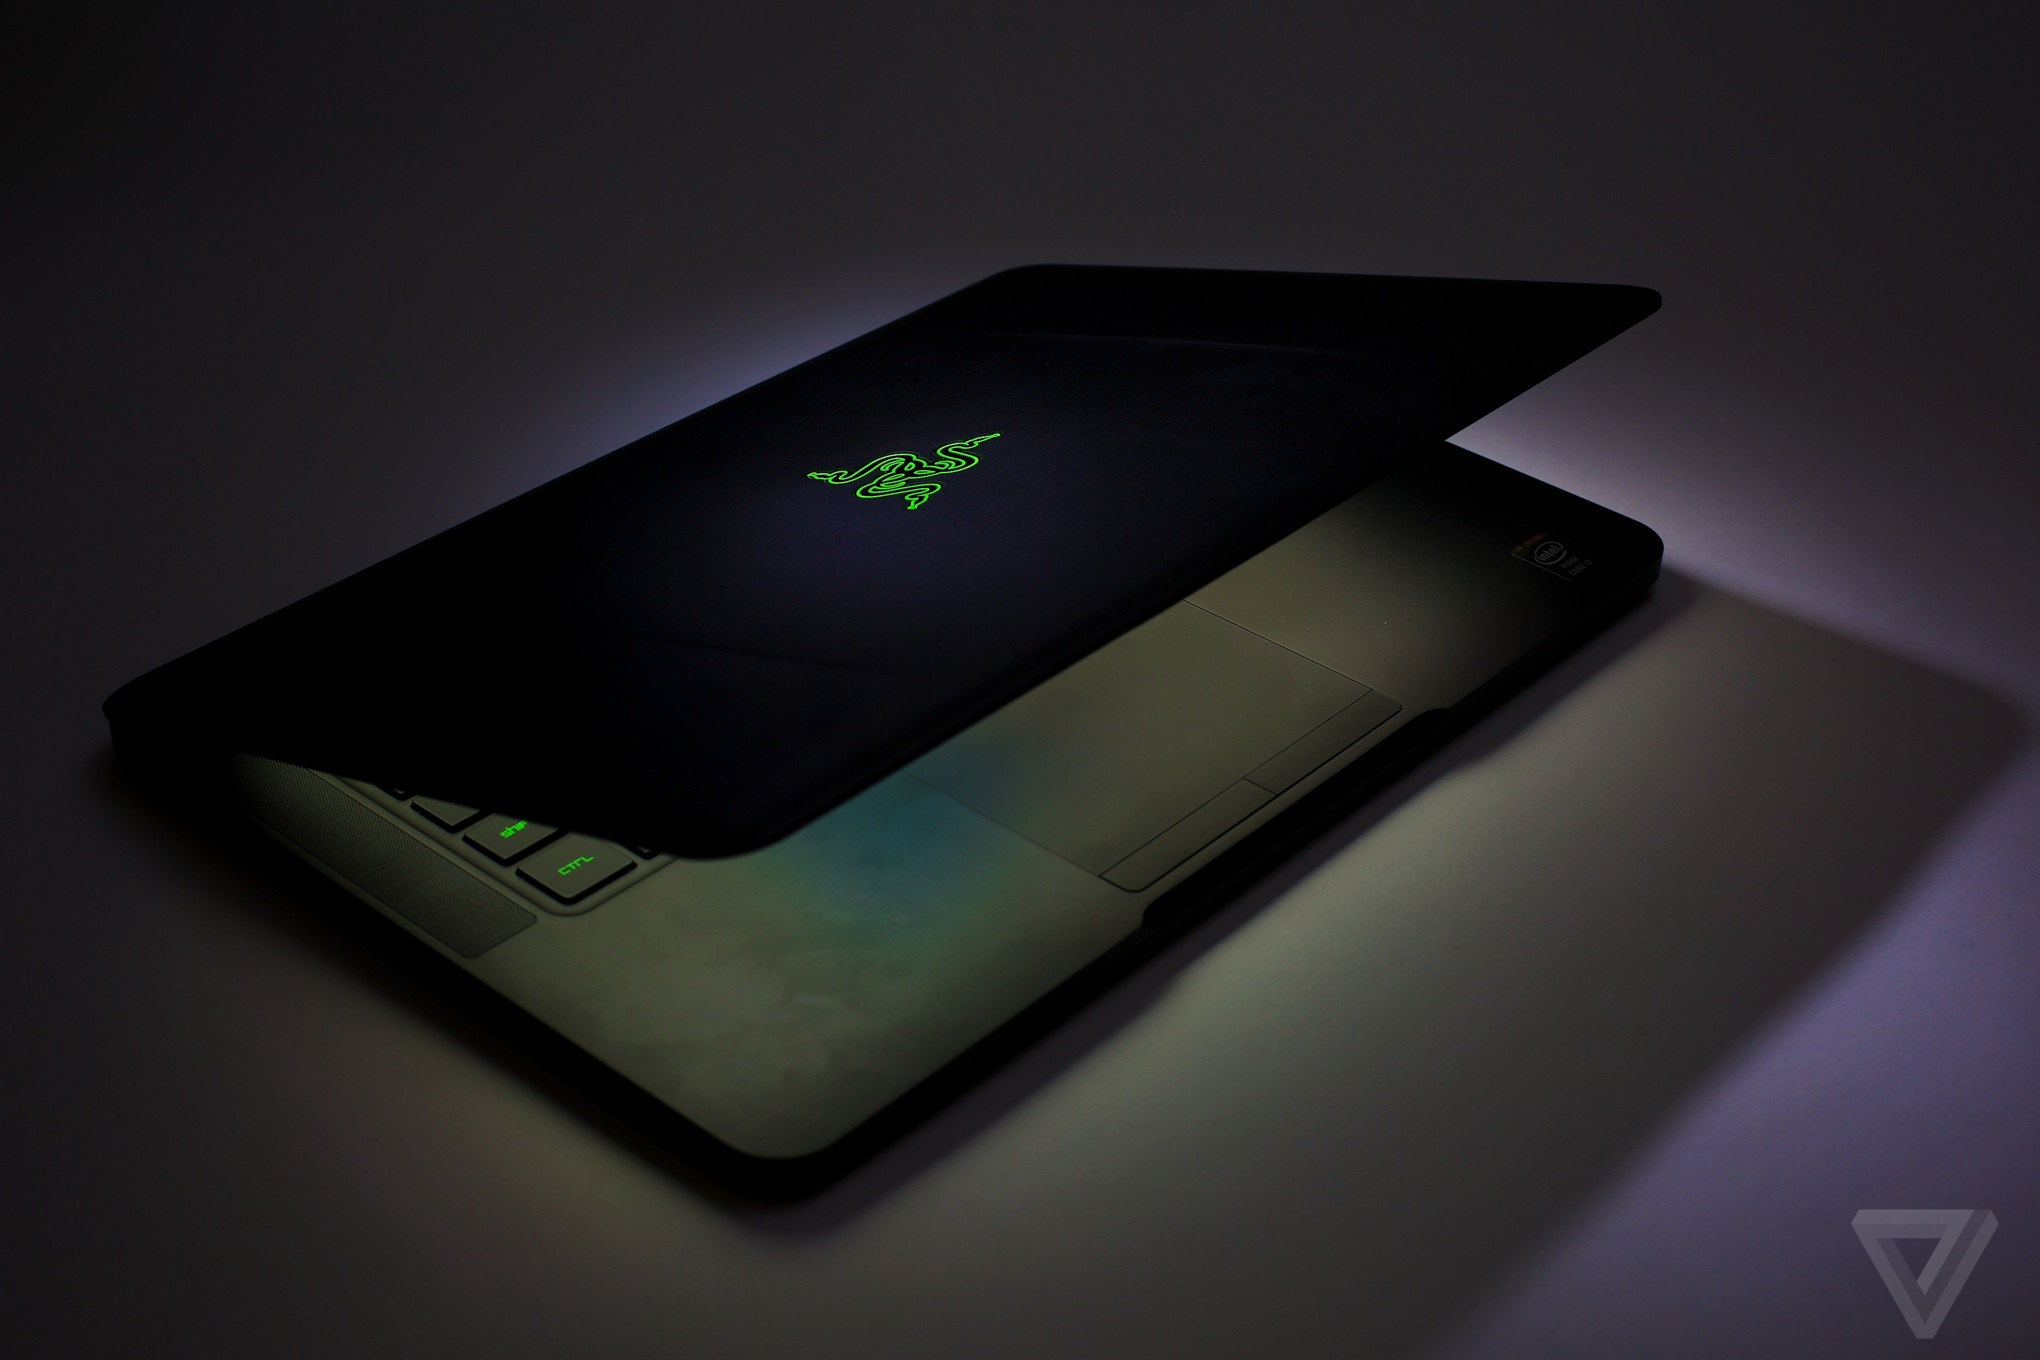 Razer-blade-hd-review-verge-02